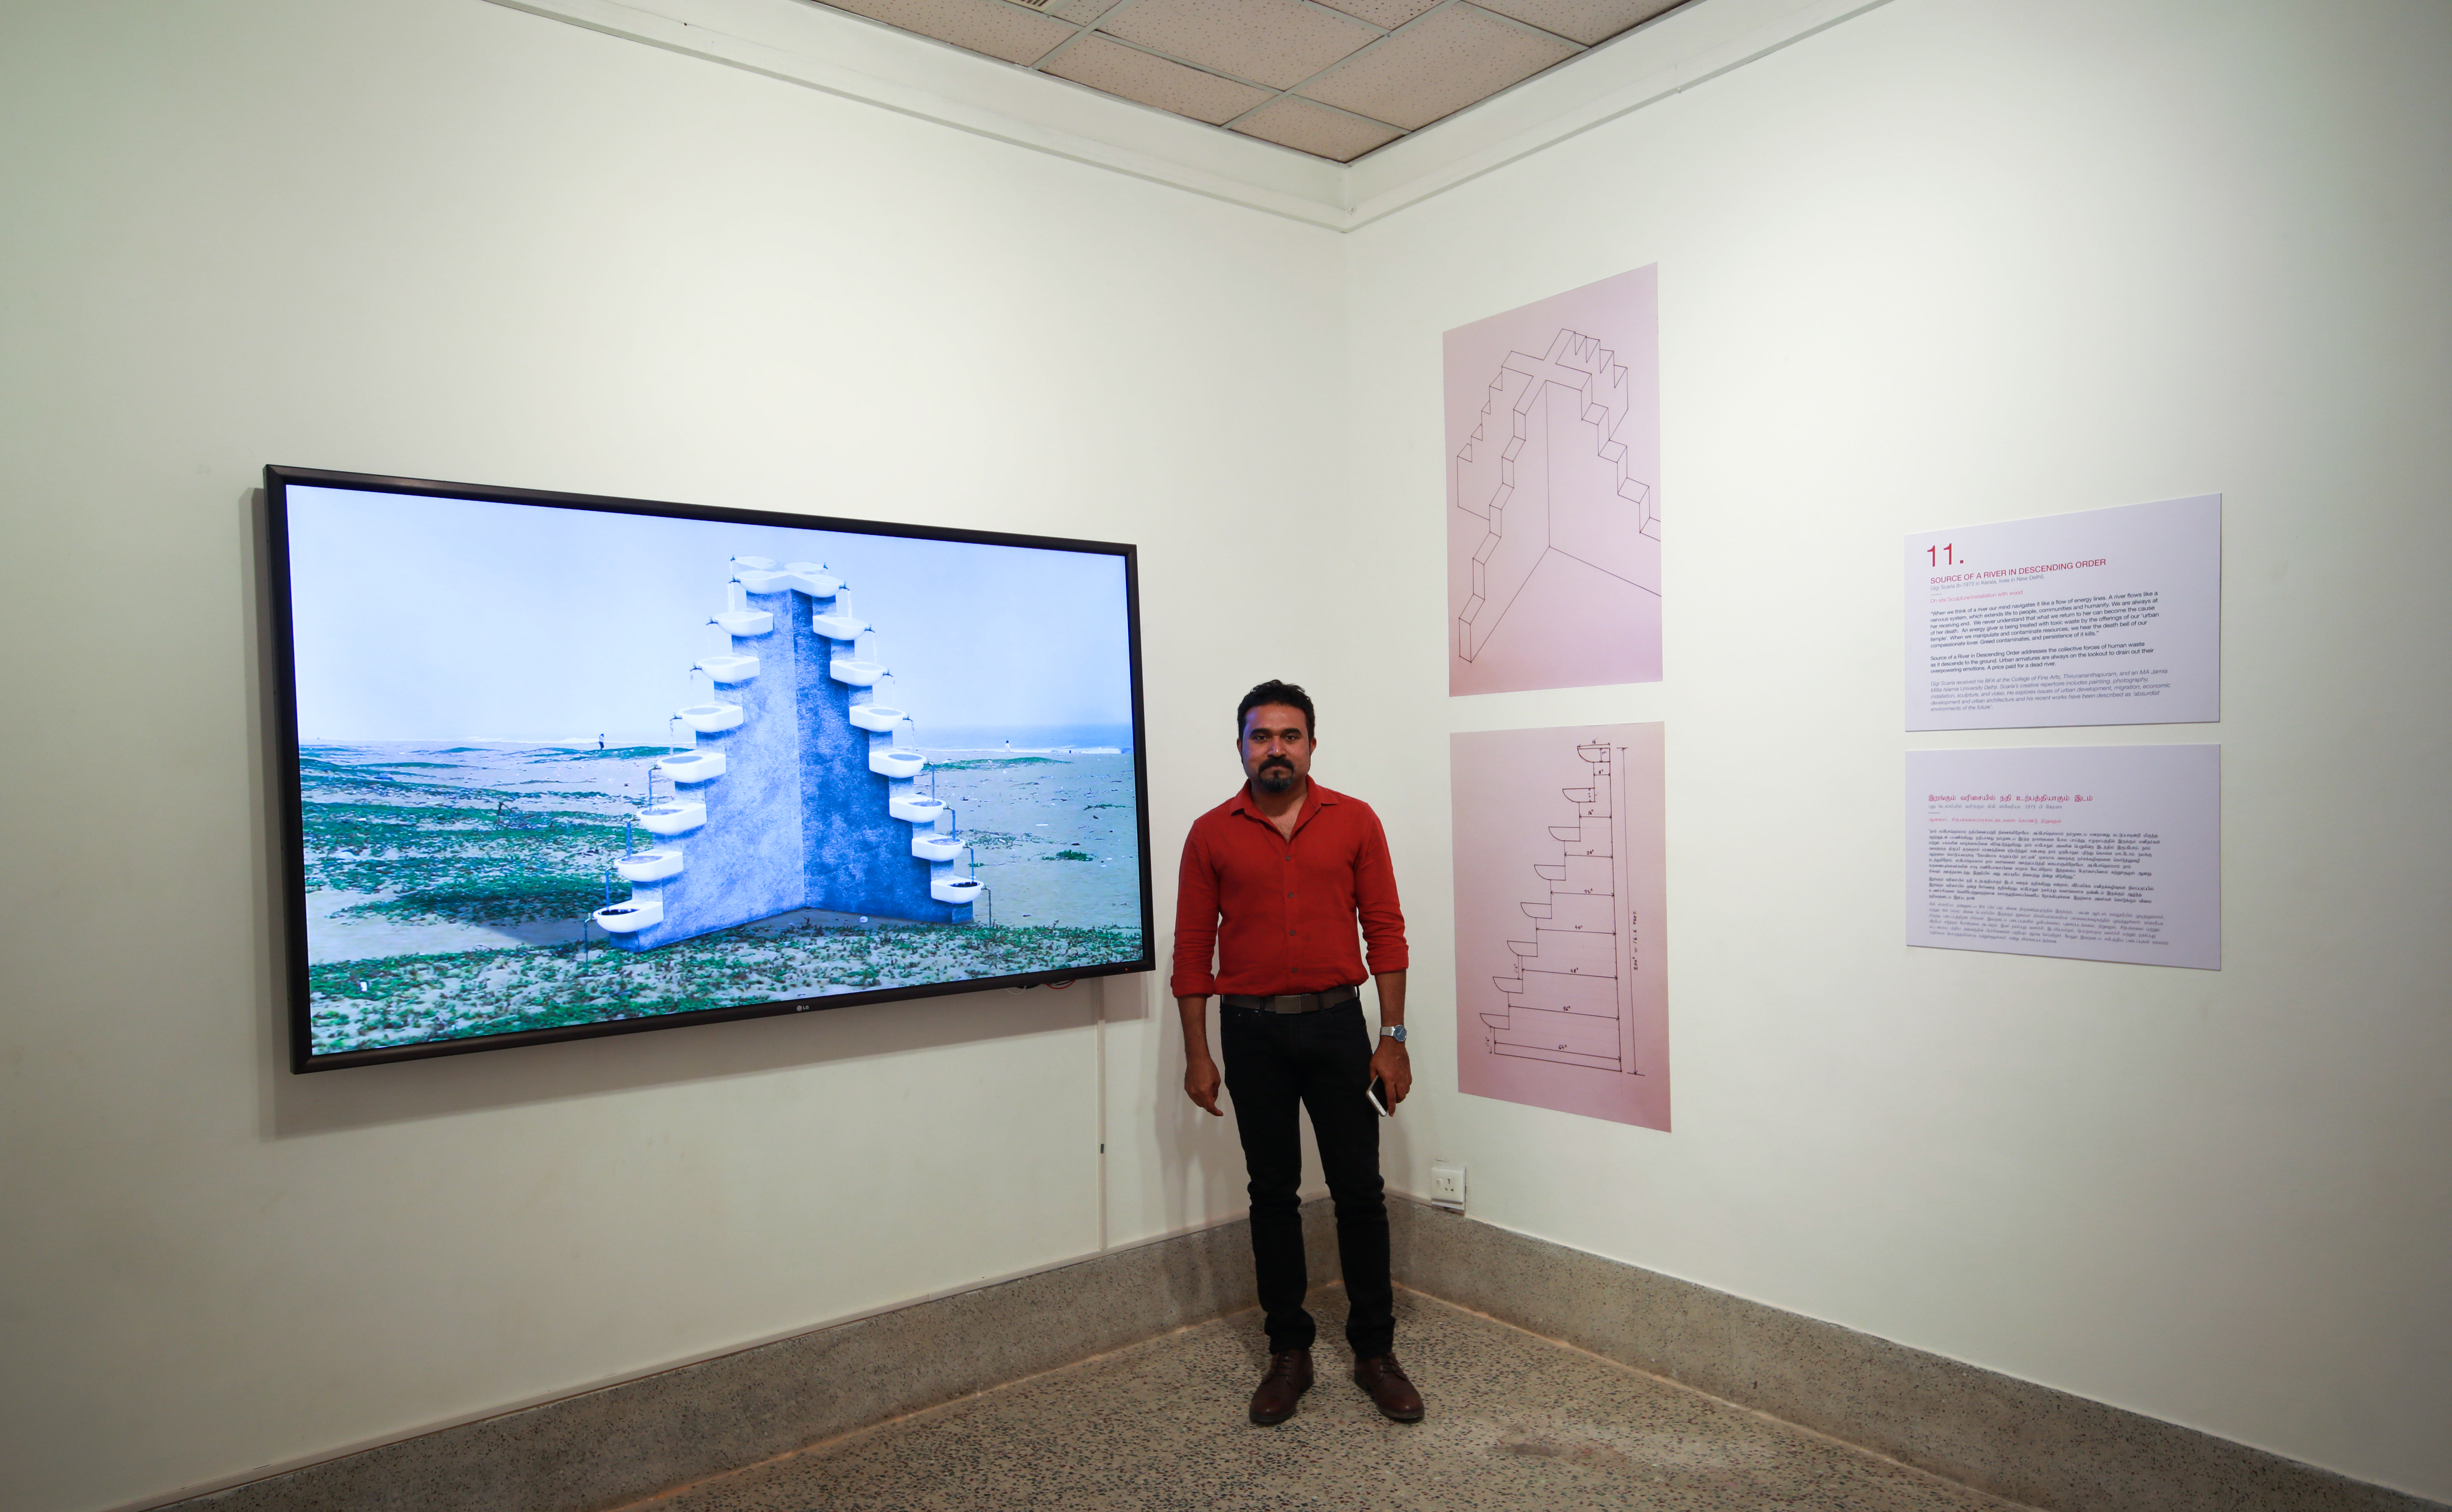 Gigi Scaria with his project 'Source of a River in Descending Order'. Credit: Madras Photo Bloggers